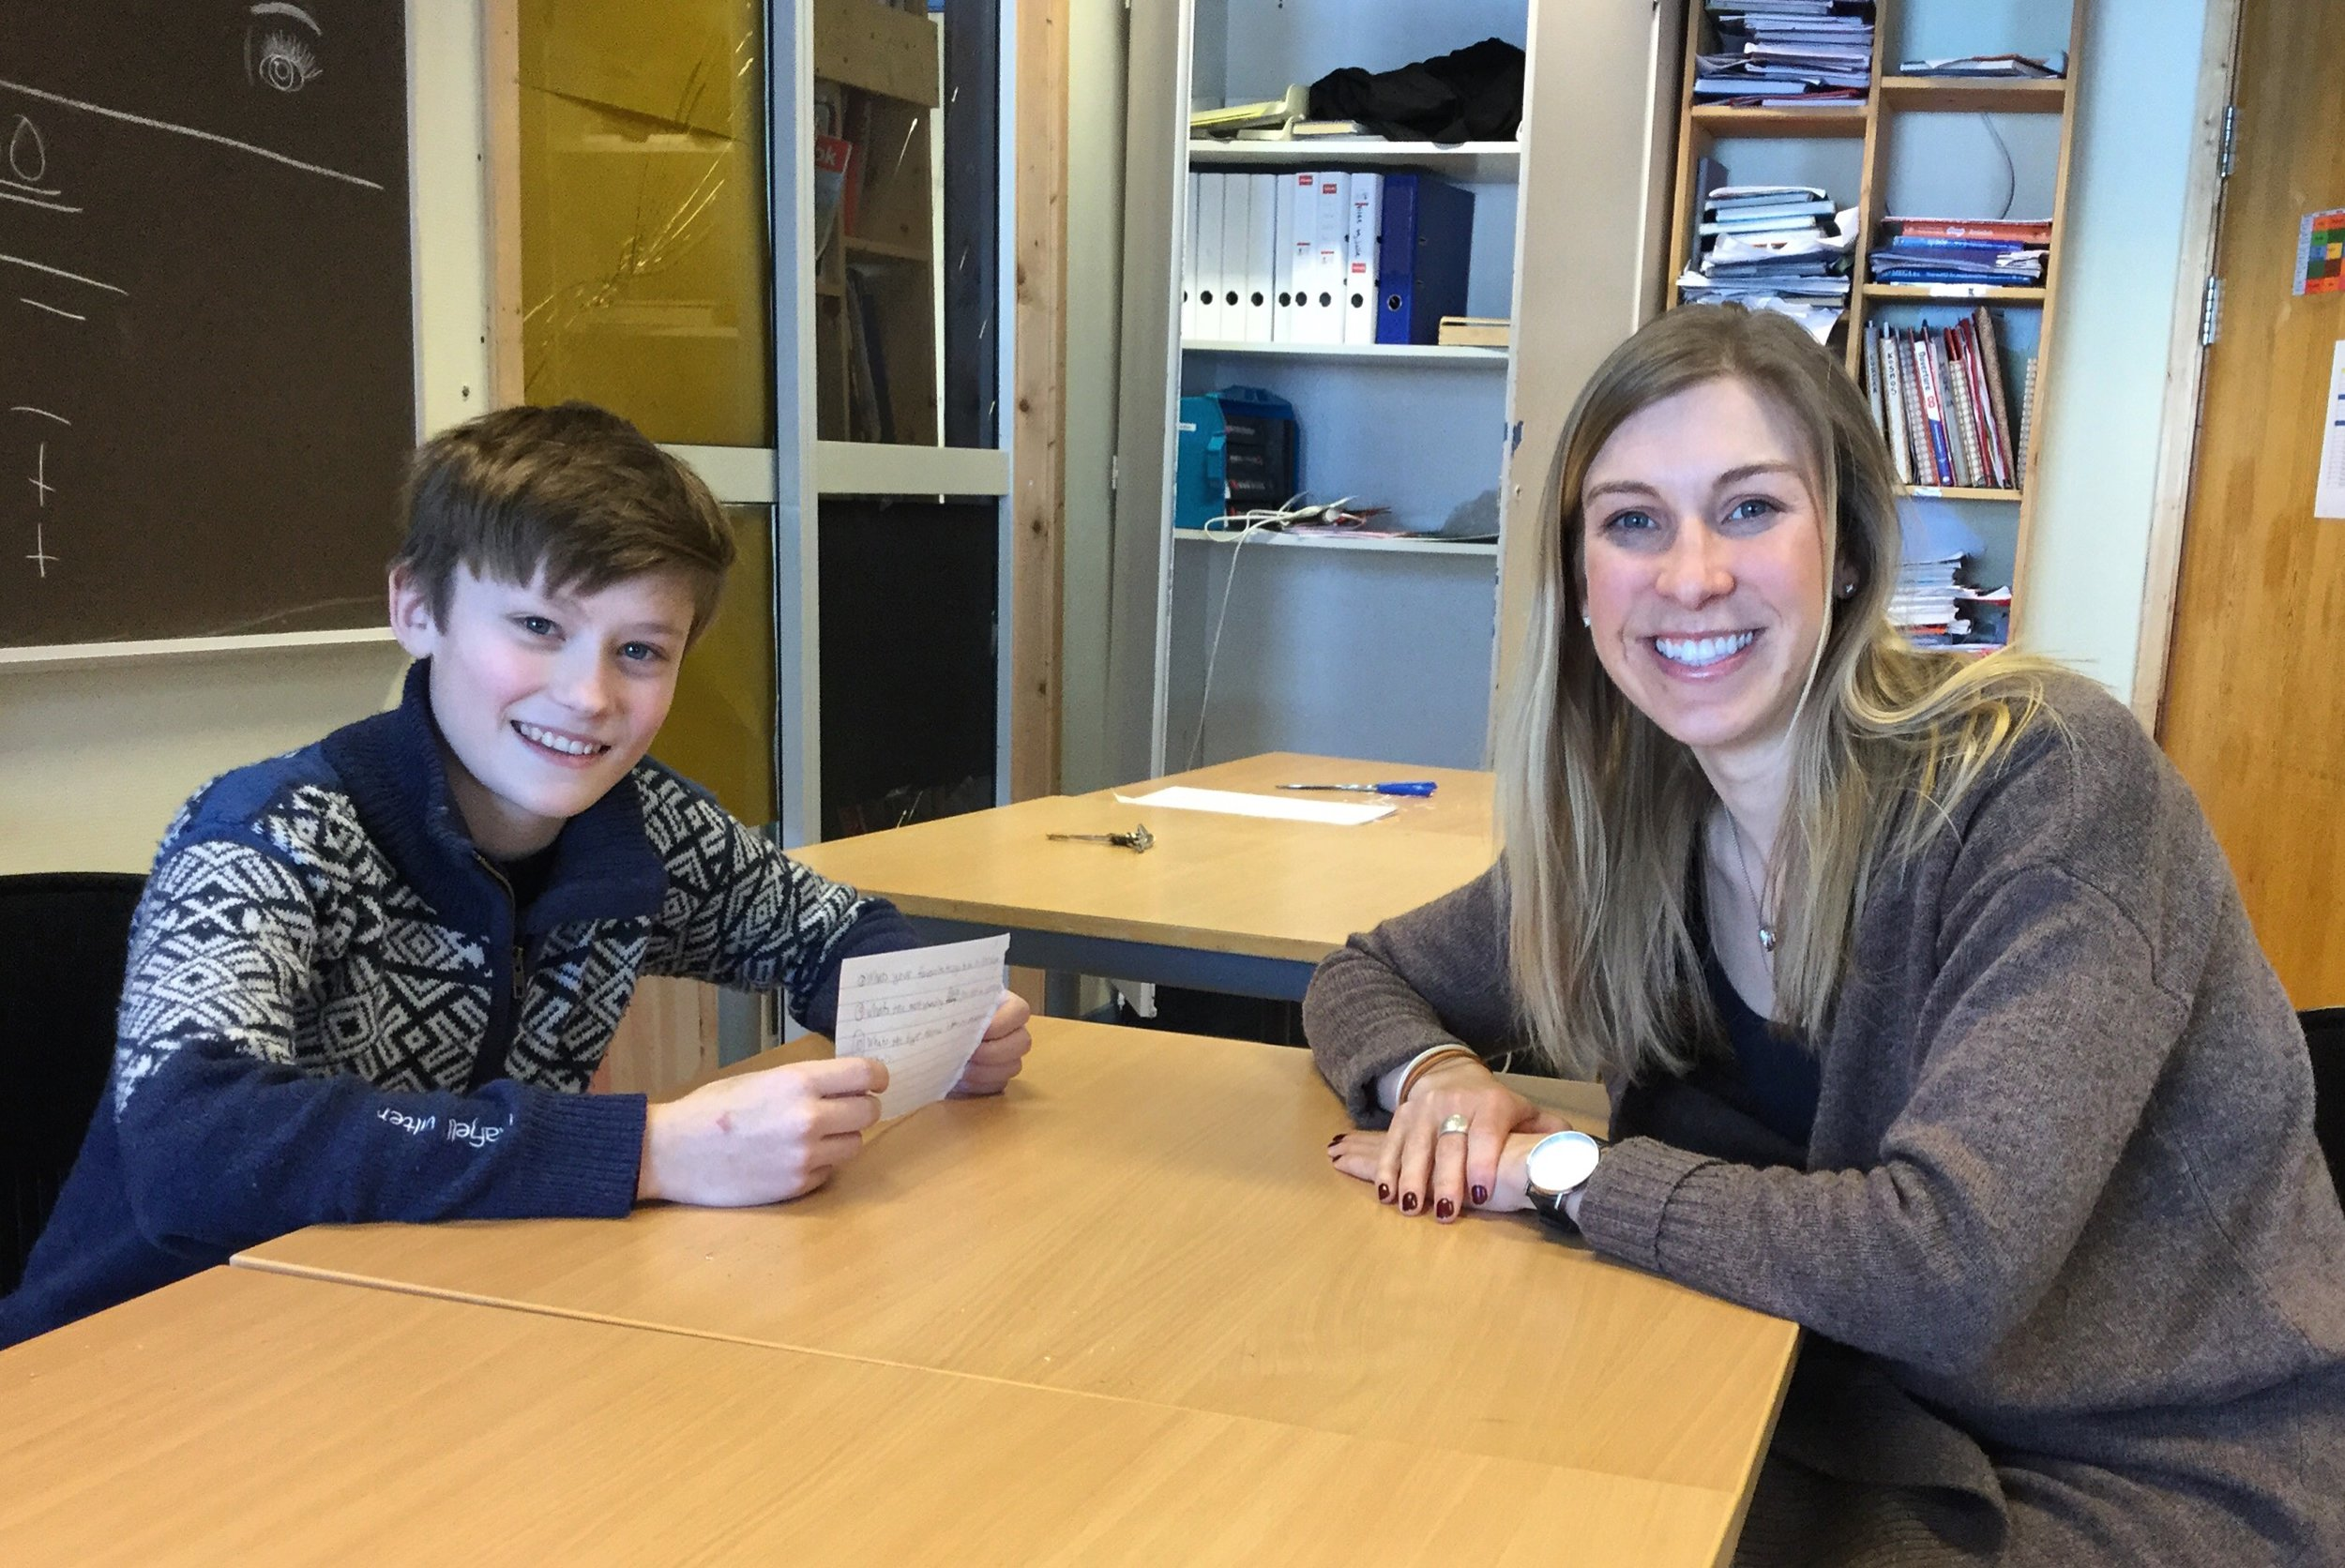 Markus, an 8th grade student, interviewed me about my life in the USA for his school newspaper.